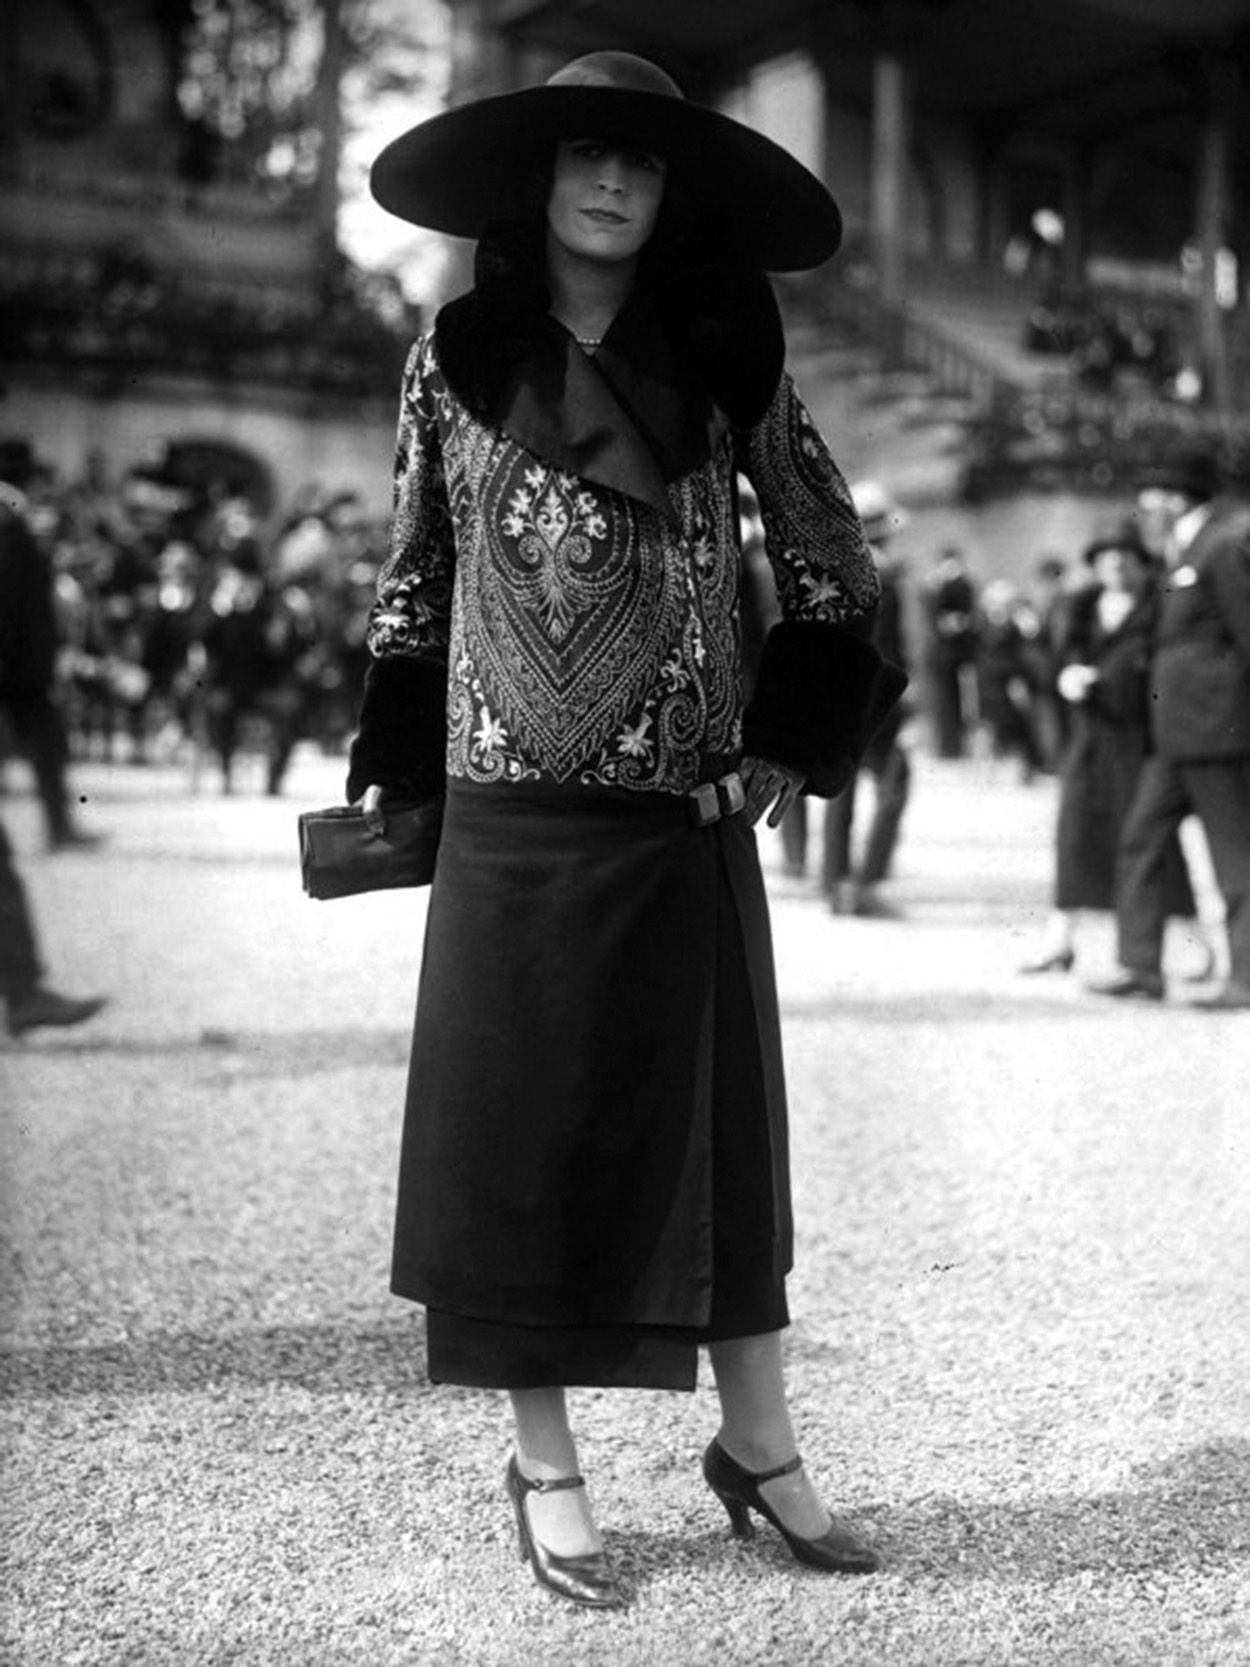 France. Wide Brimmed Hat, Urban Streetwear, Paris, 1920s